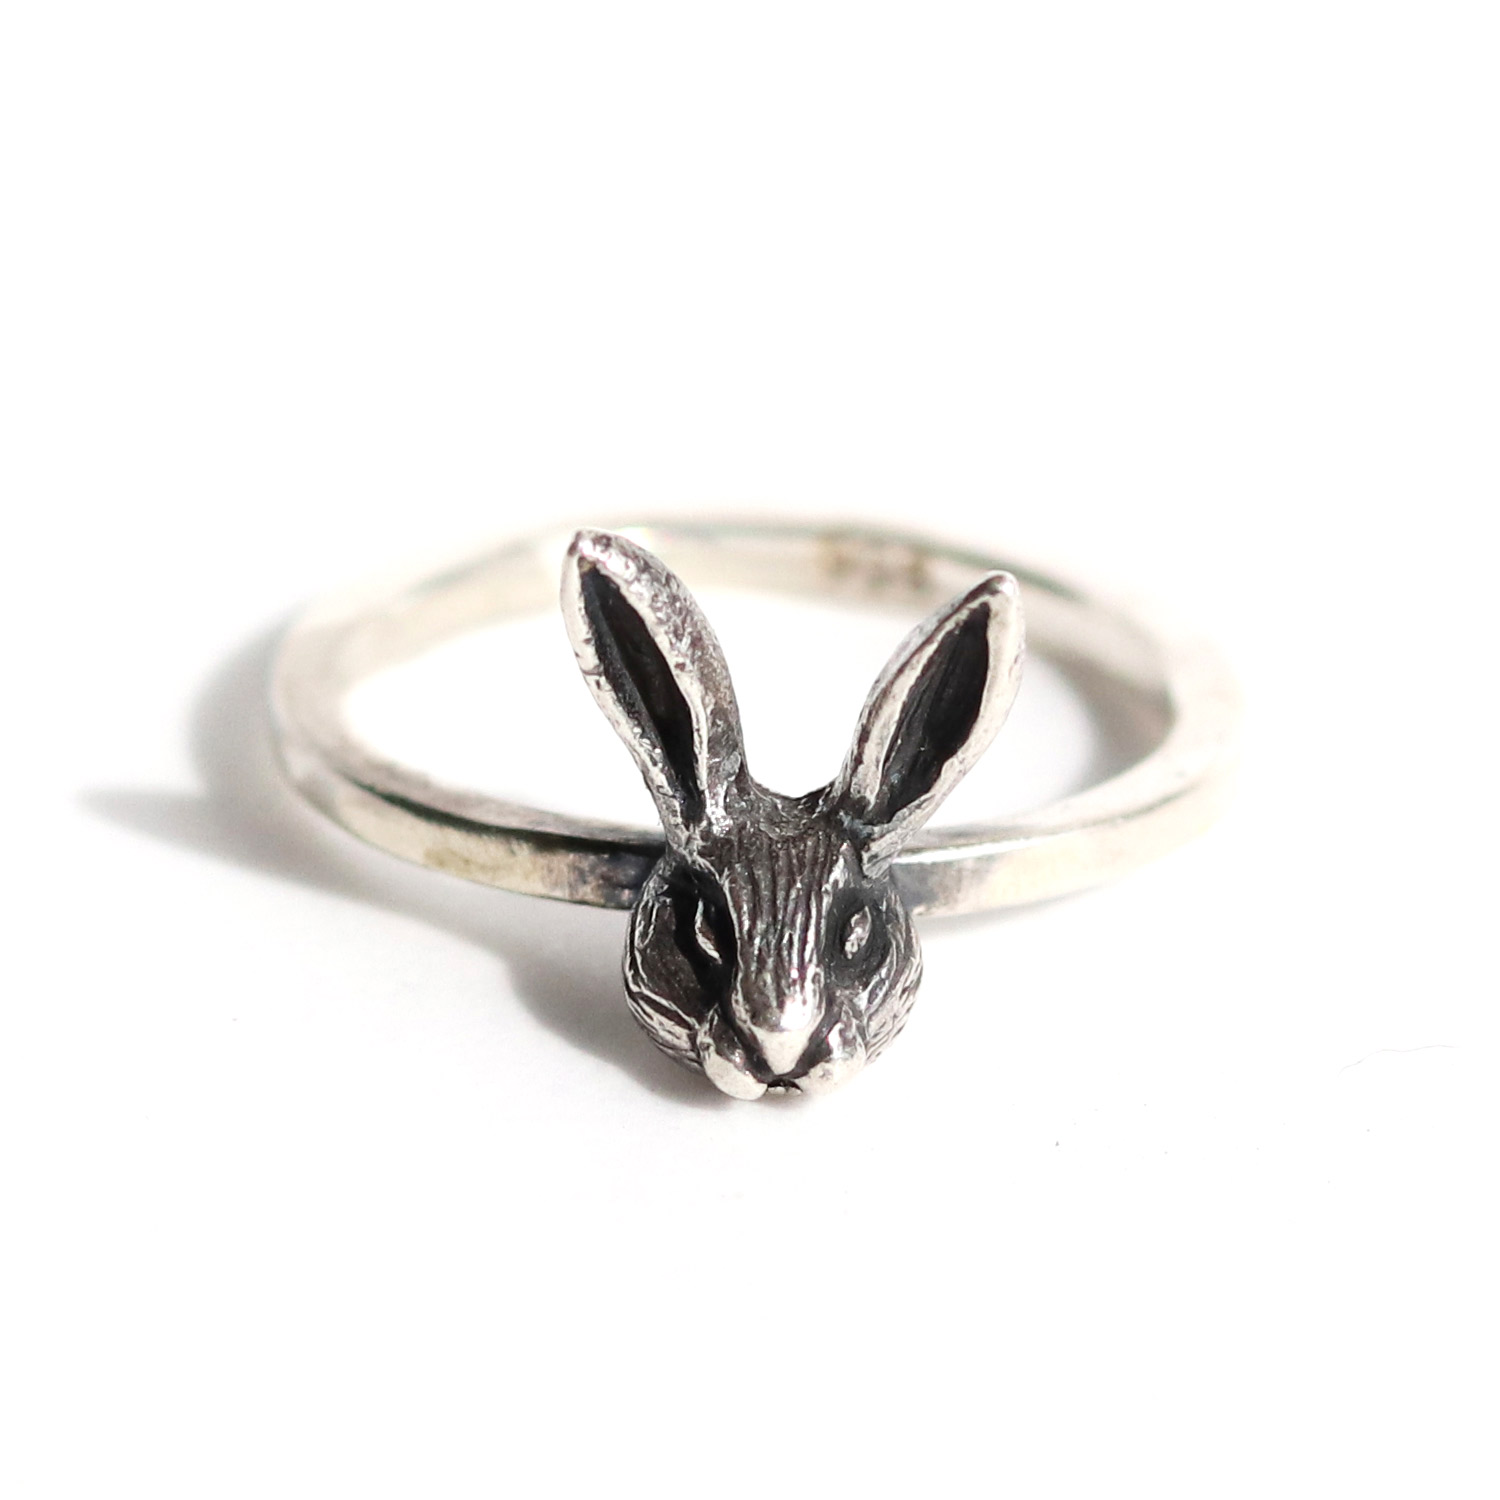 Fudge bunny ring